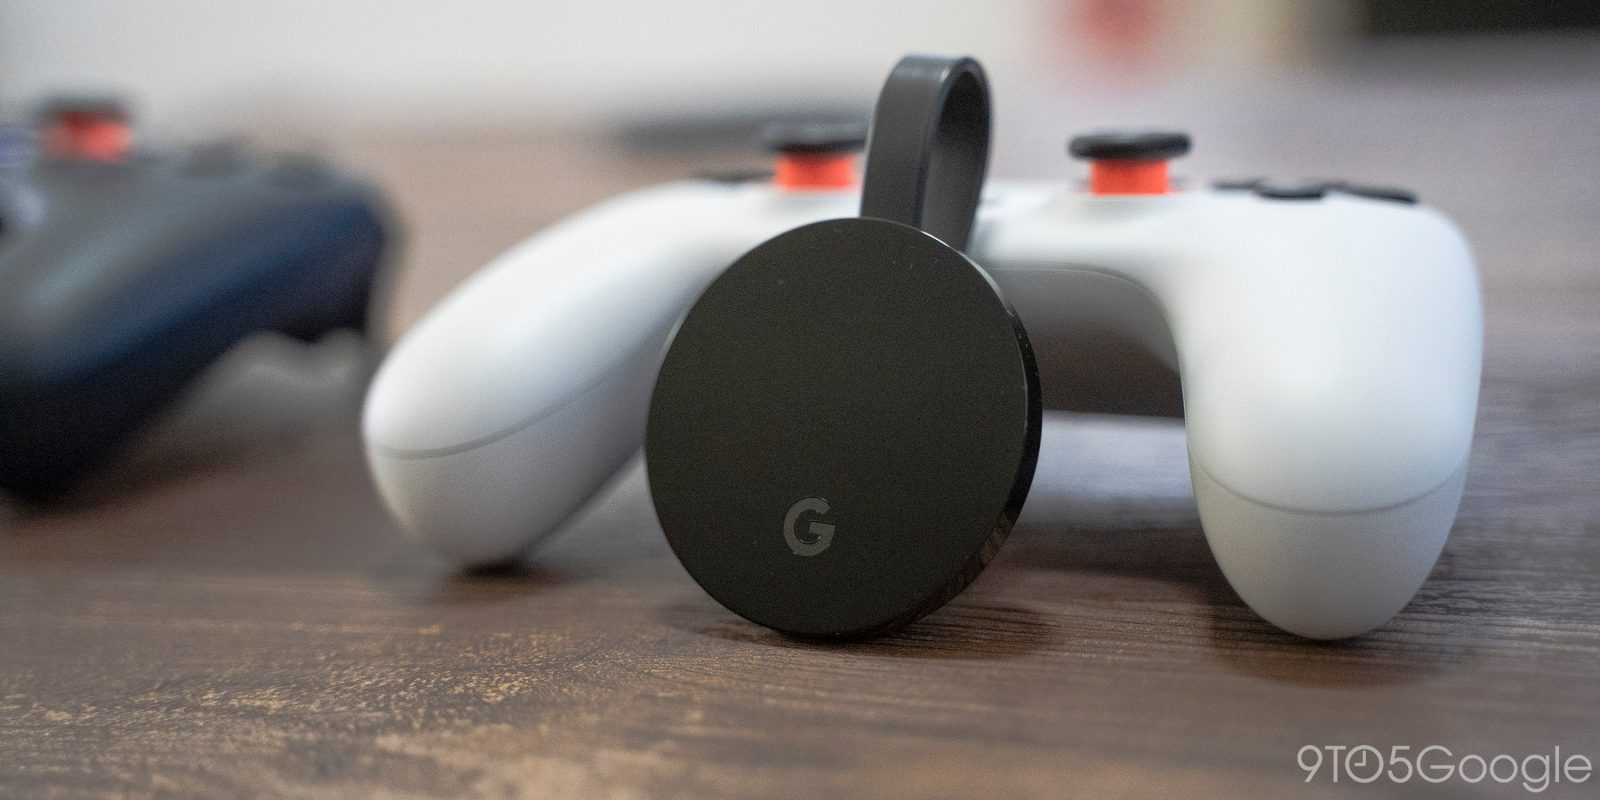 This week's top stories: Stadia isn't really 4K, Pixel 3 not for sale, Dynamic Email on mobile, more